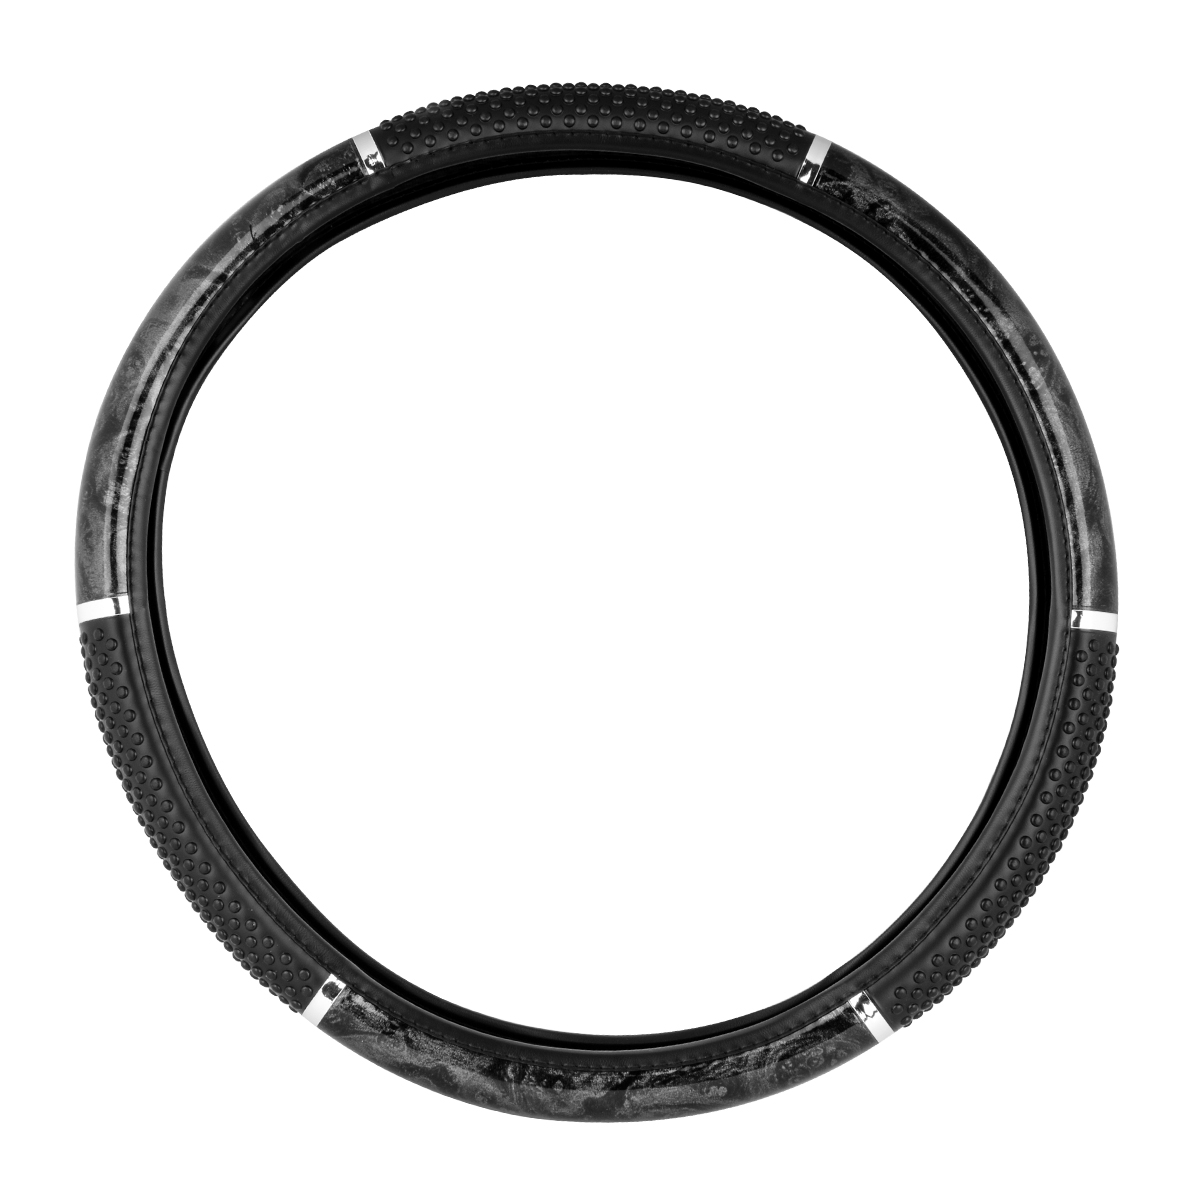 "54042 Medium Duty 18"" Steering Wheel Cover"